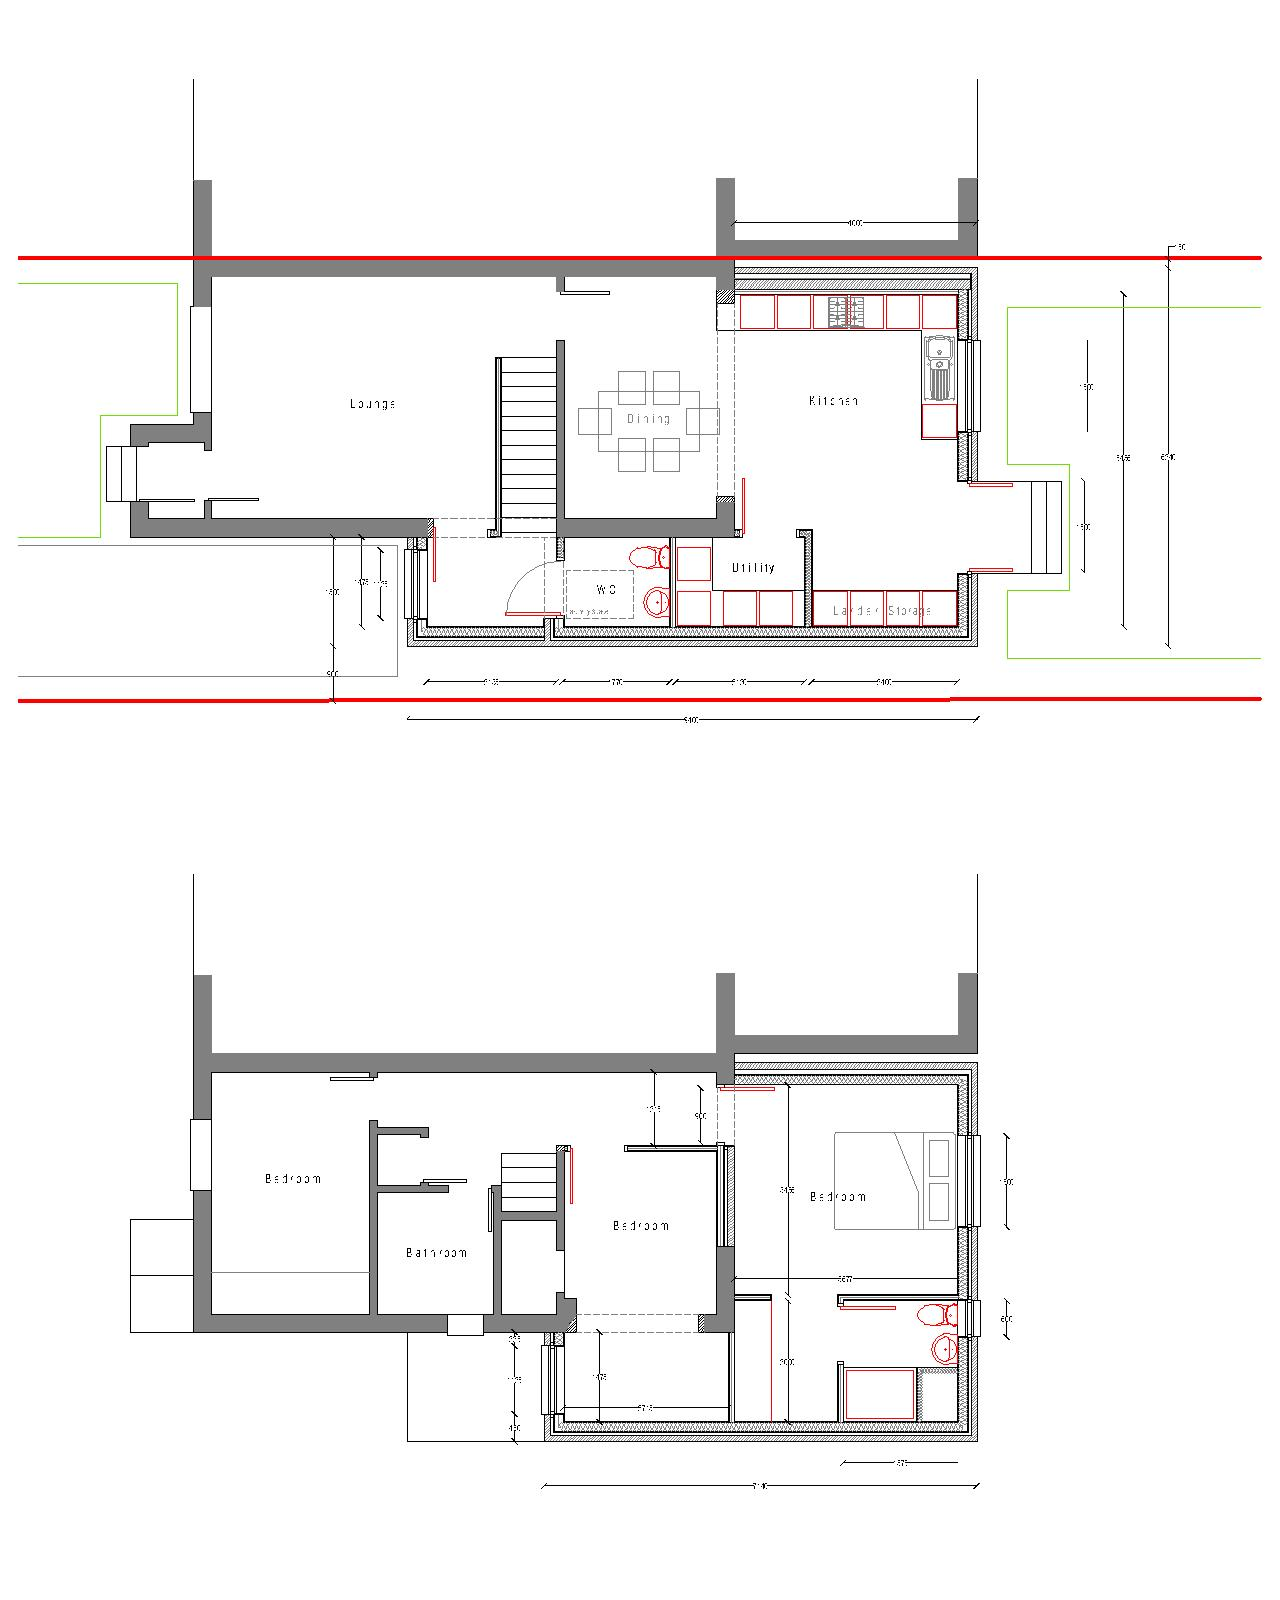 M u r r a y m a c l e o d a s s o c i a t e s l t d for Room extension plans